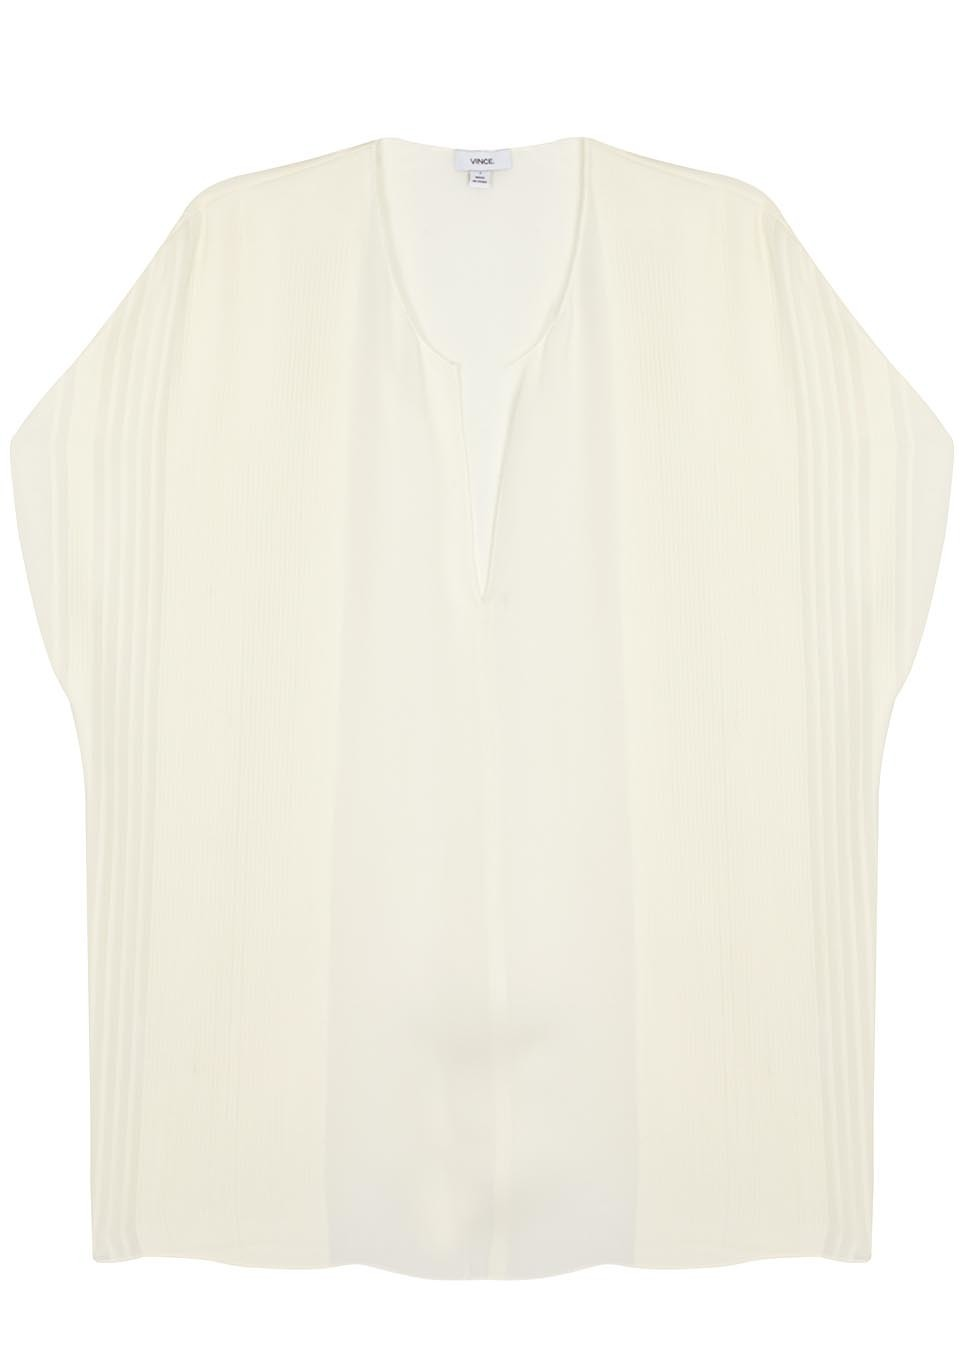 Ivory Pintucked Silk Top - neckline: v-neck; pattern: plain; predominant colour: ivory/cream; occasions: evening; length: standard; style: top; fibres: silk - 100%; fit: body skimming; sleeve length: short sleeve; sleeve style: standard; texture group: silky - light; pattern type: fabric; season: s/s 2016; wardrobe: event